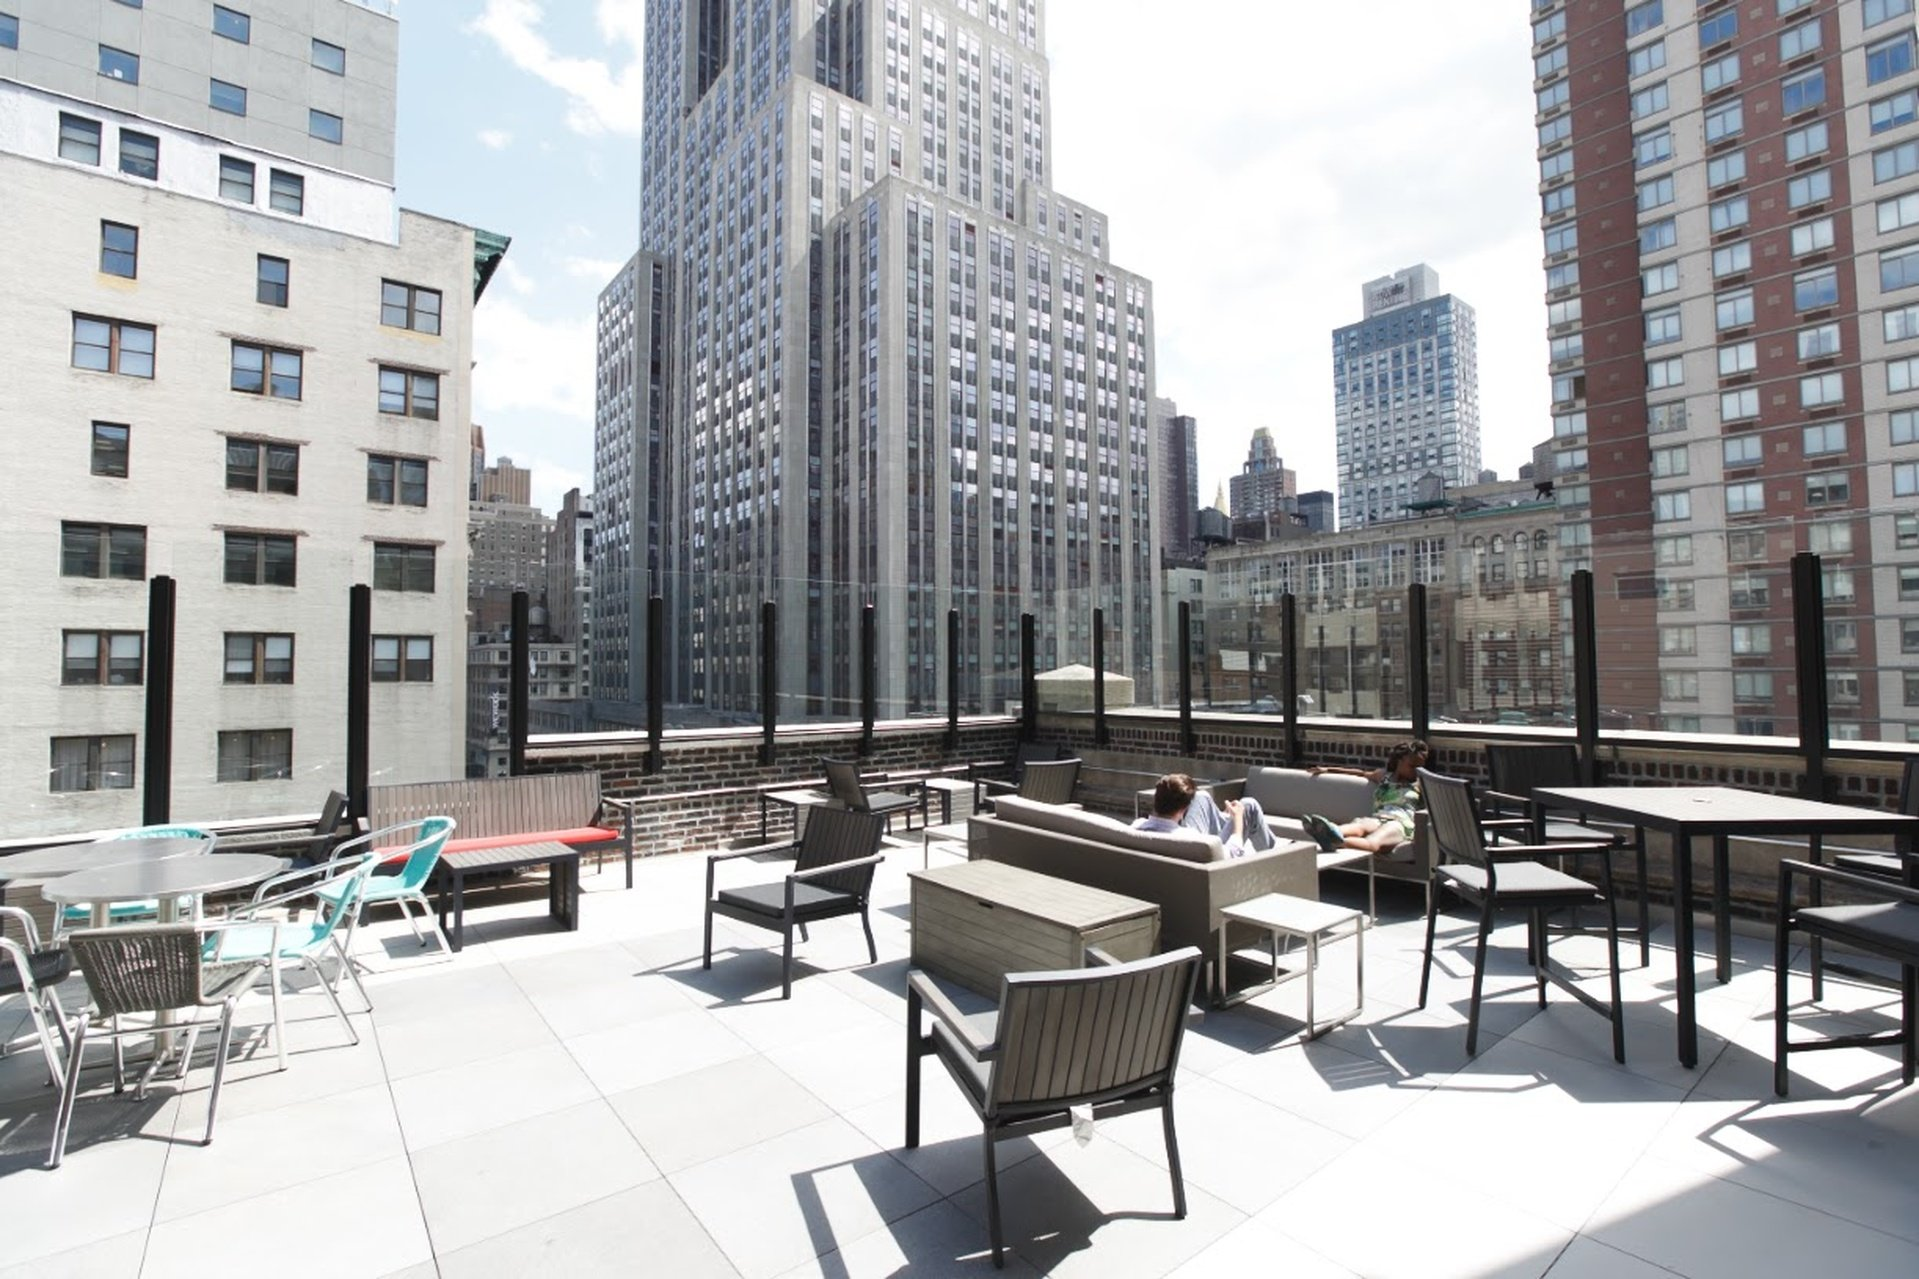 NYC corporate event venues Rooftop Jay Suites  34th Street - Rooftop terrace image 0